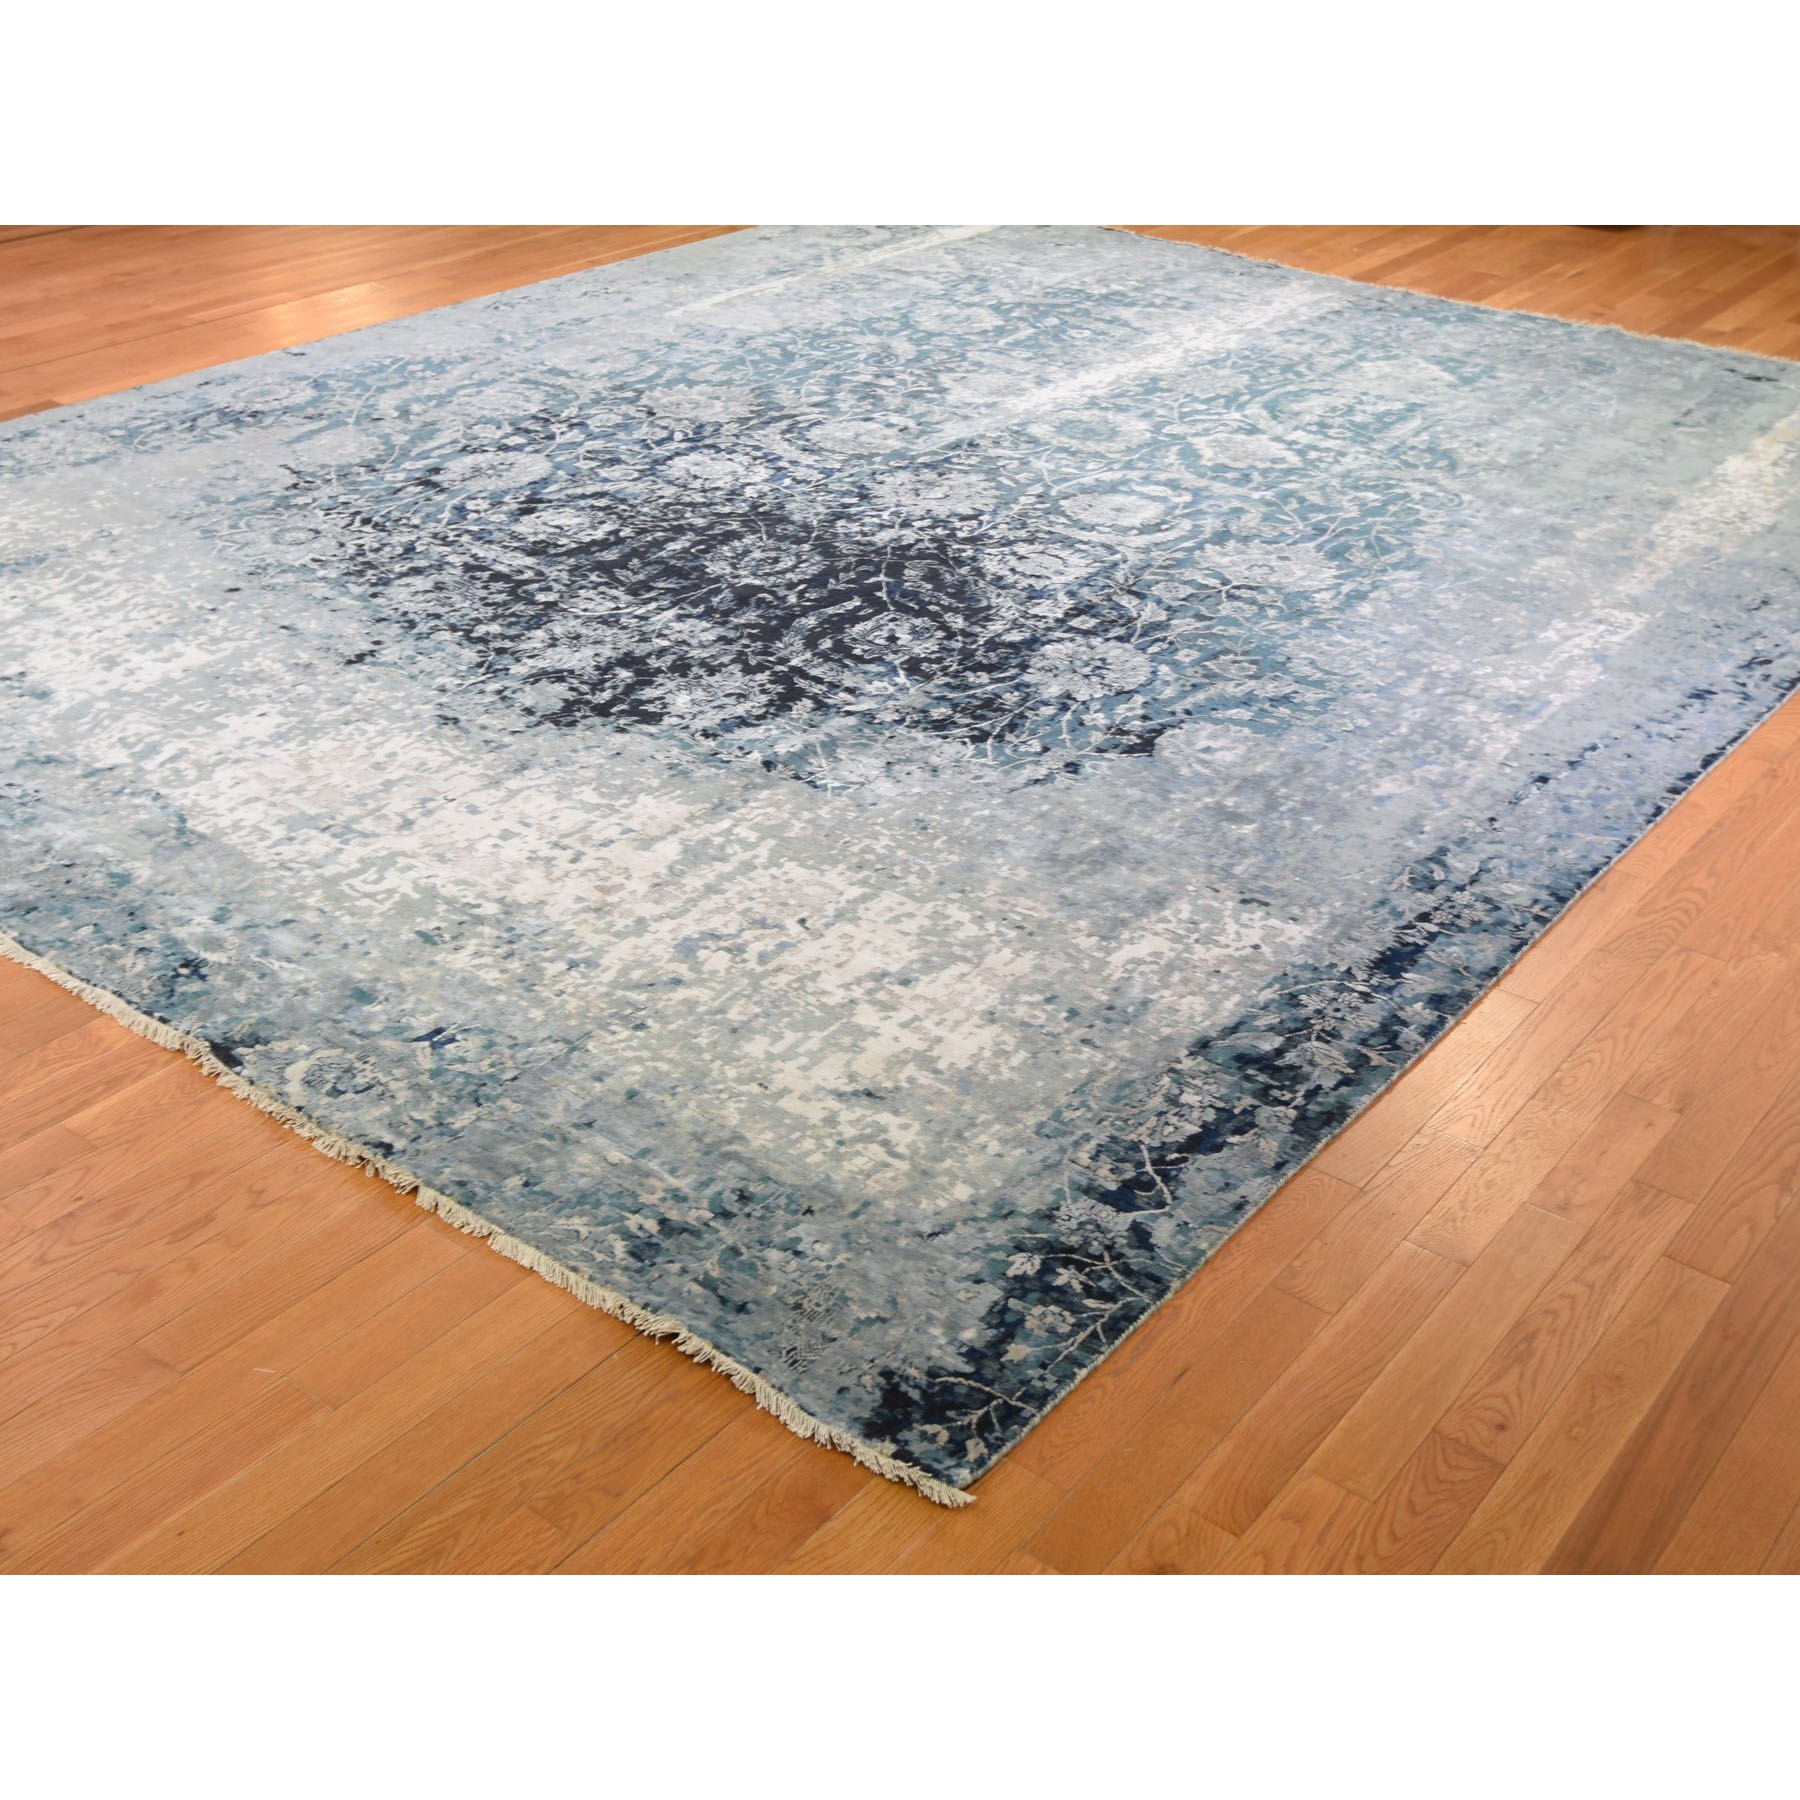 12-x15-1  Oversized Blue Broken Persian Tabriz Erased Design Wool And Silk Hand Knotted Oriental Rug